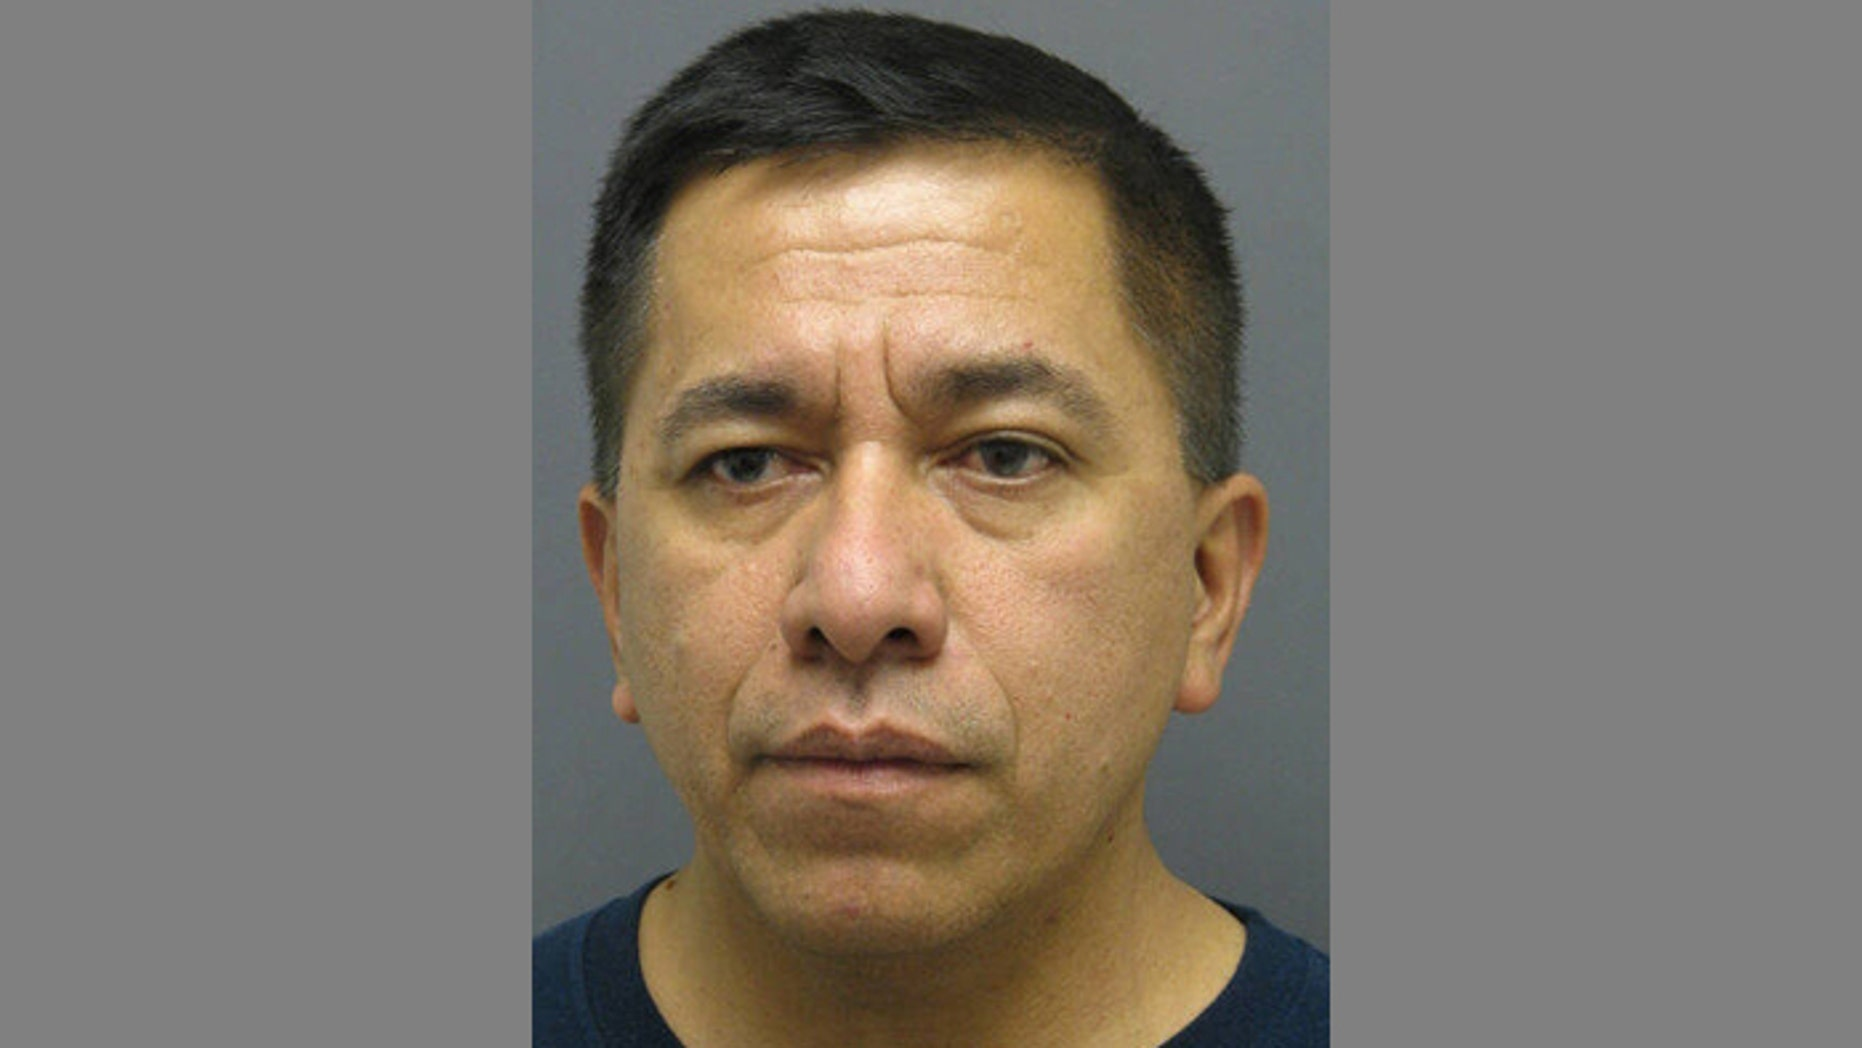 U.S. Secret Service Officer Hector Cuellar was arrested Monday and charged with sexual assault of a 14-year-old girl. (Prince William County police)